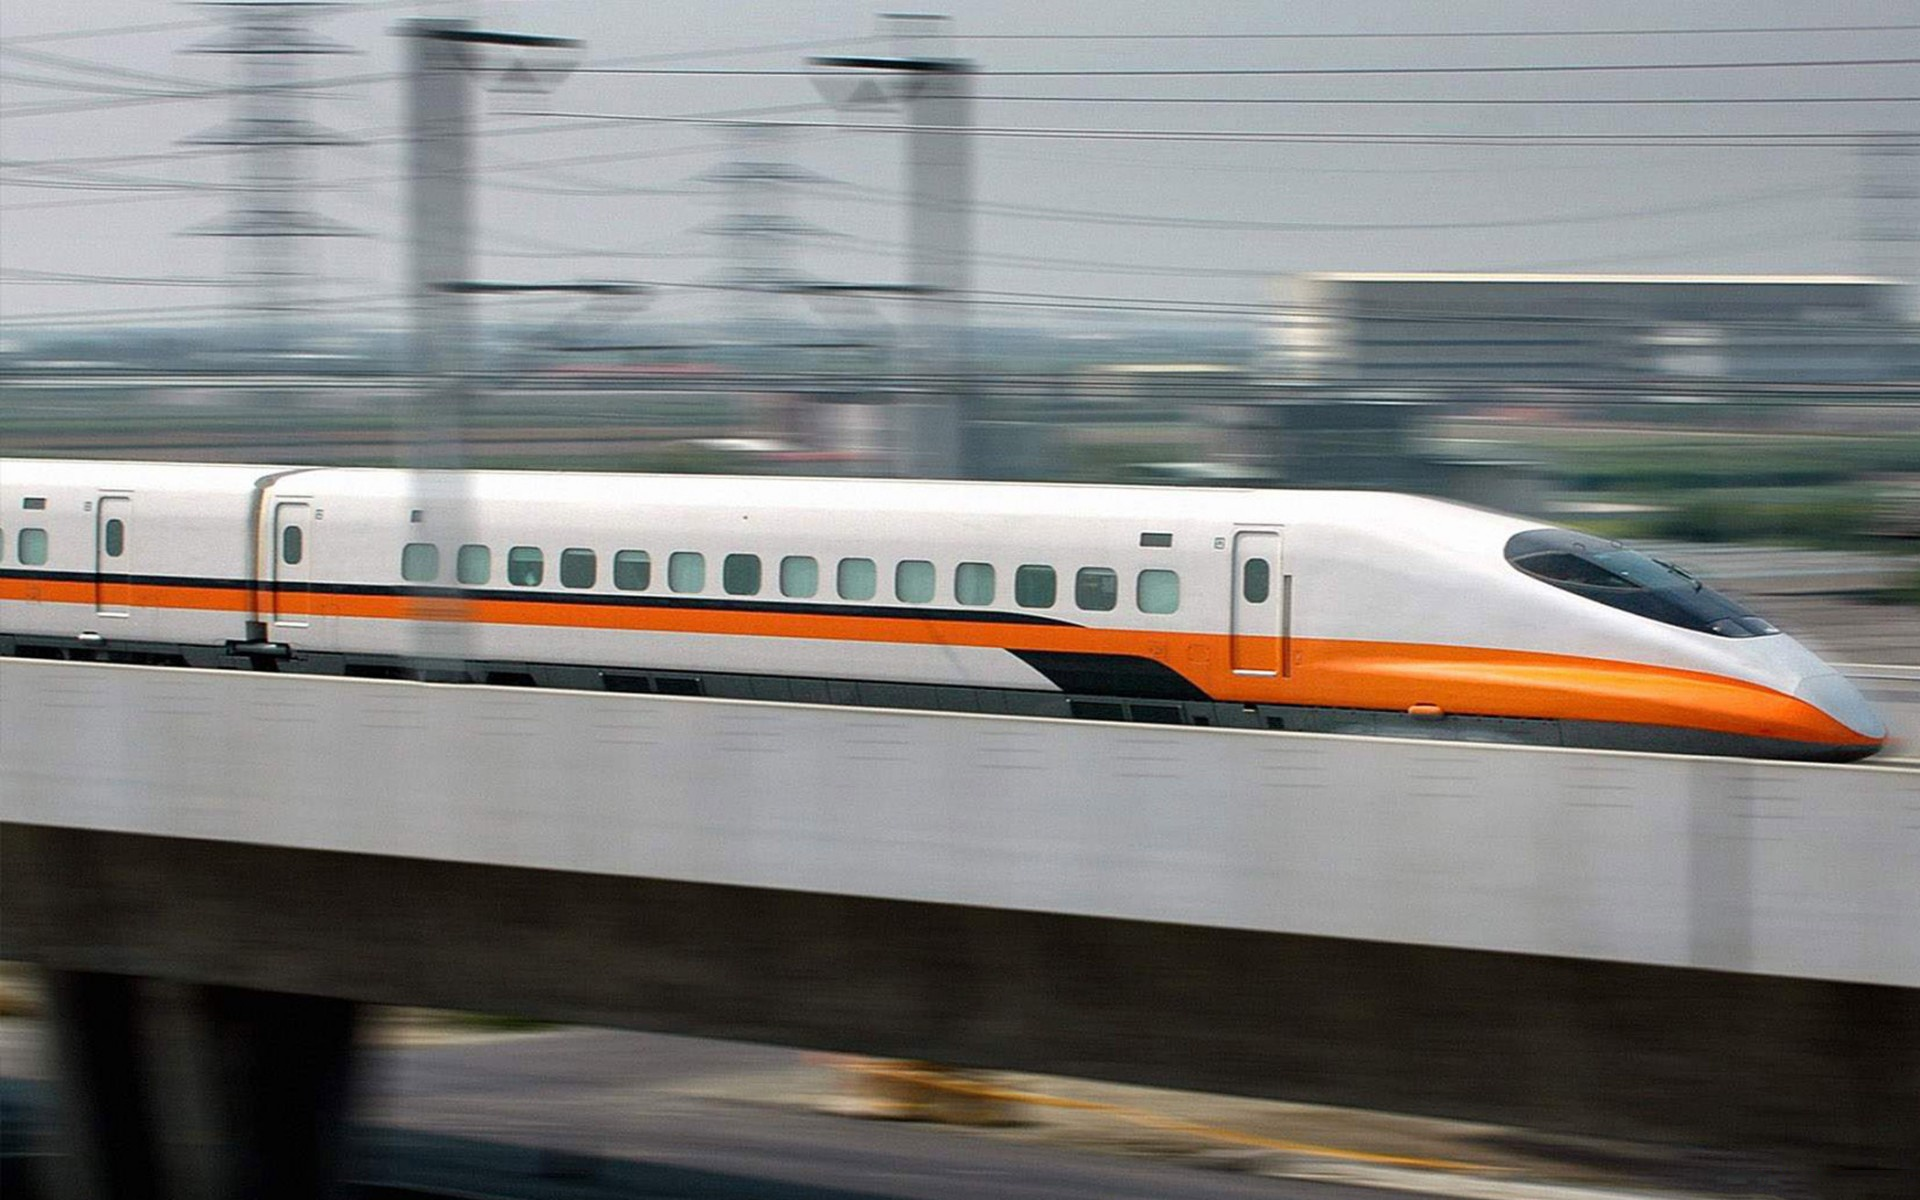 Bullet Train wallpaper Best HD Wallpapers 1920x1200